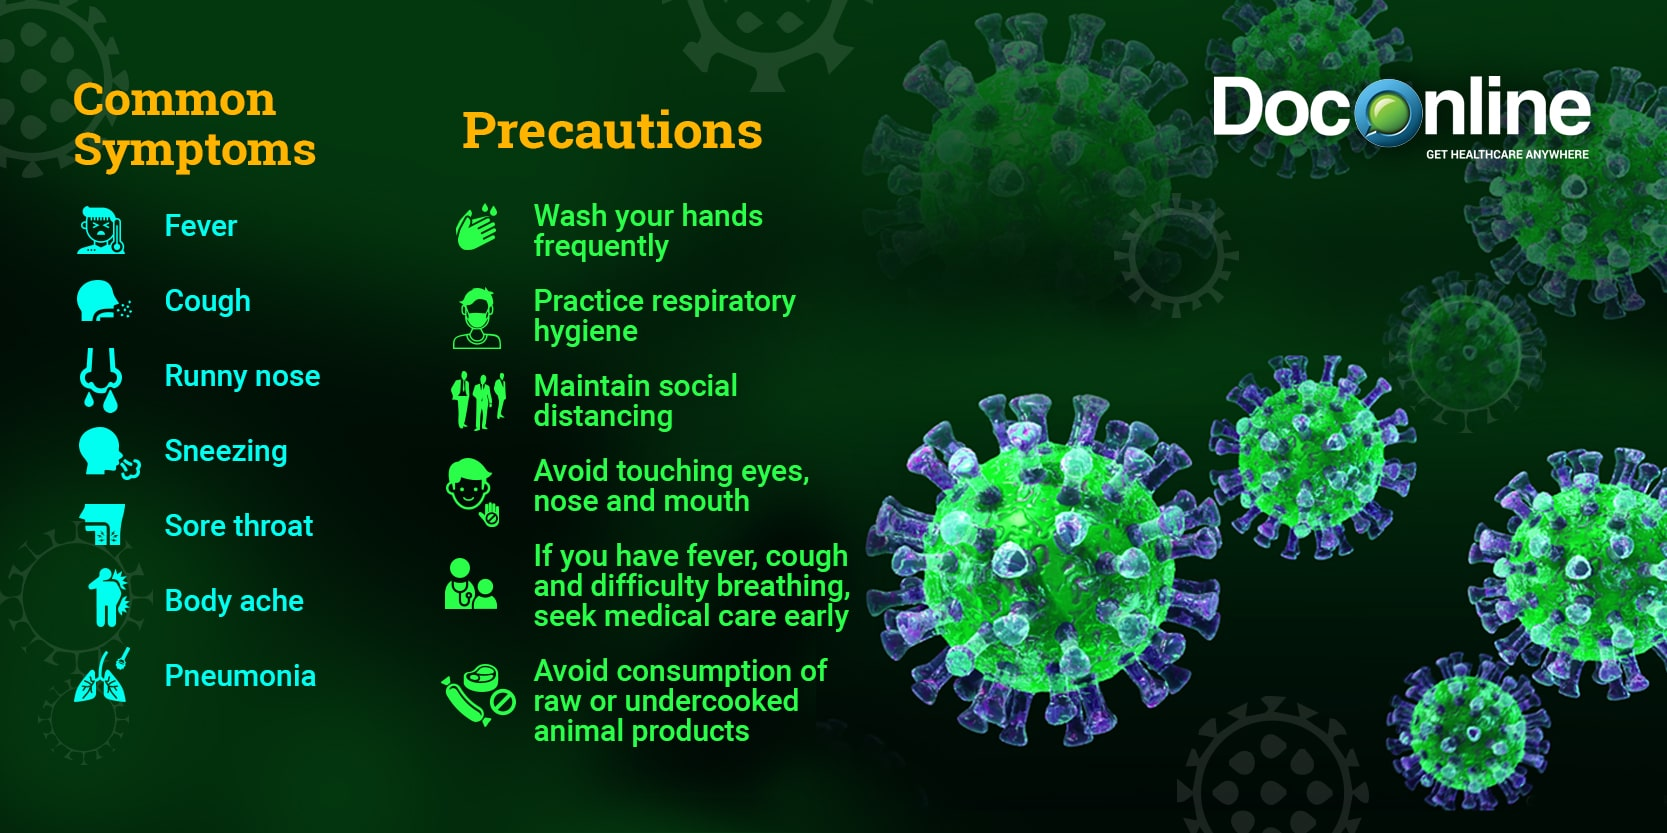 Coronavirus - Symptoms & Precautions